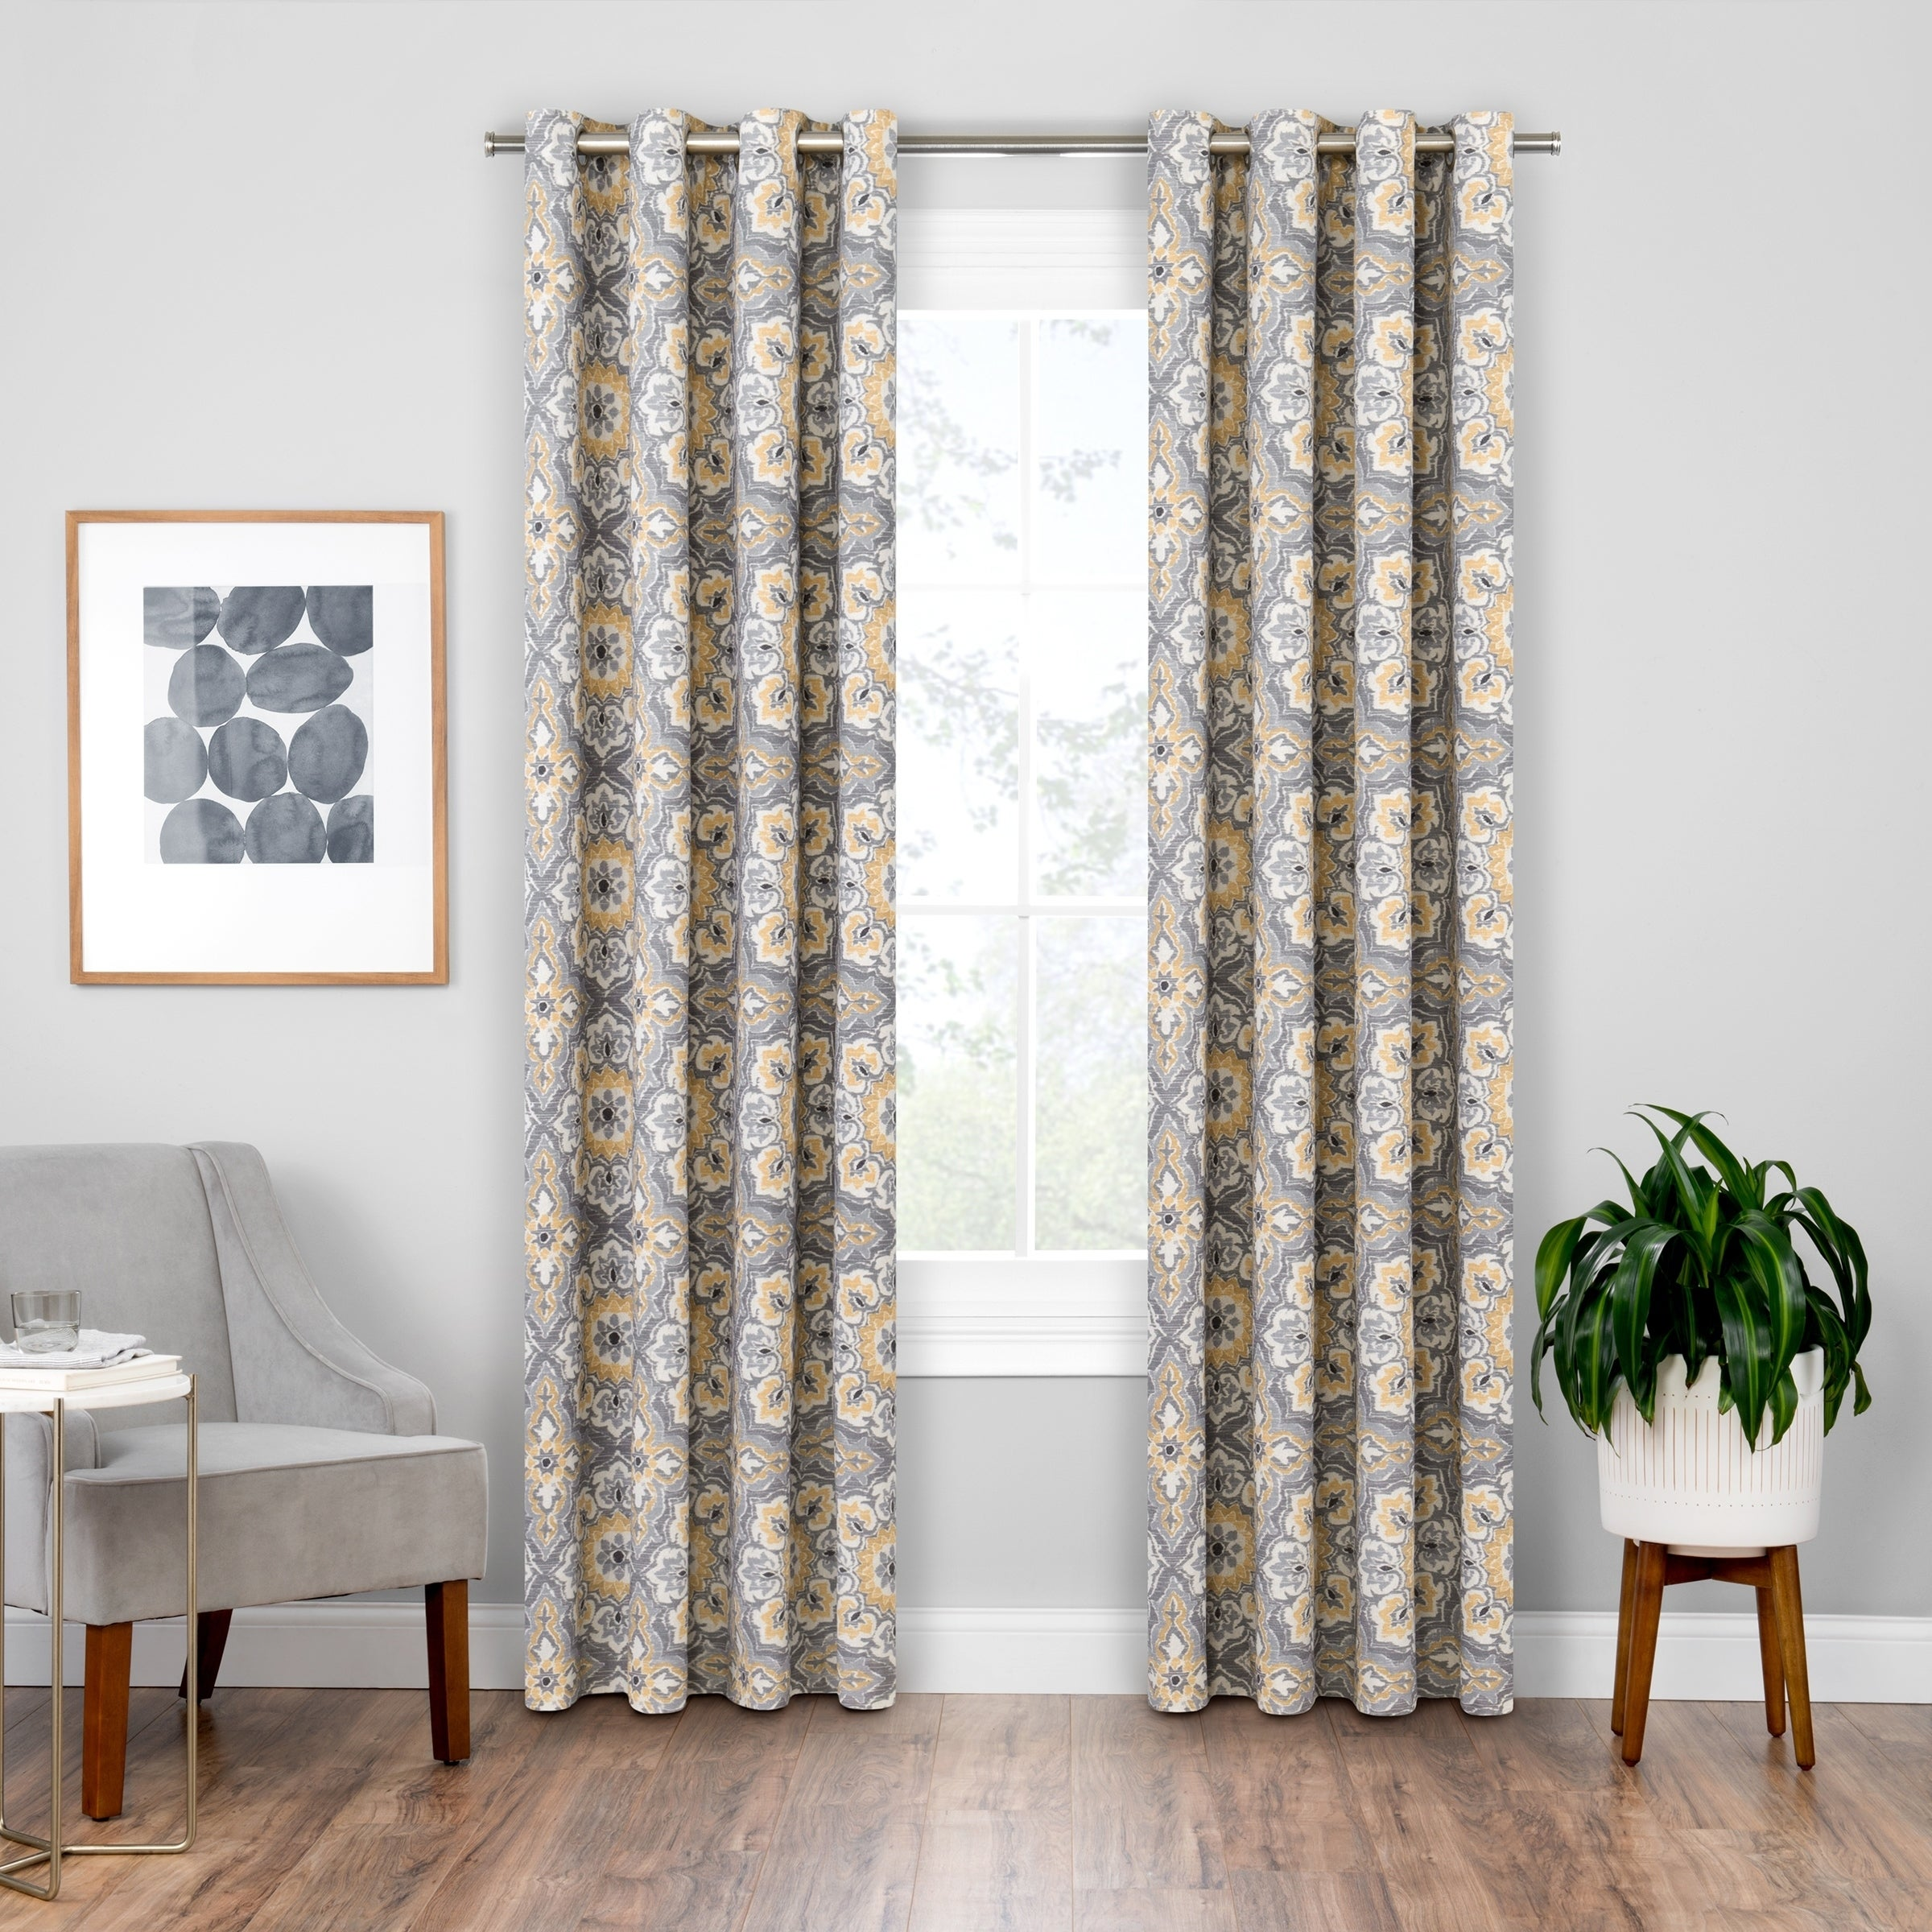 orders shipping curtain waverly cotton madfish curtains unique of home free shower hipstyle review toile over blue printed decor